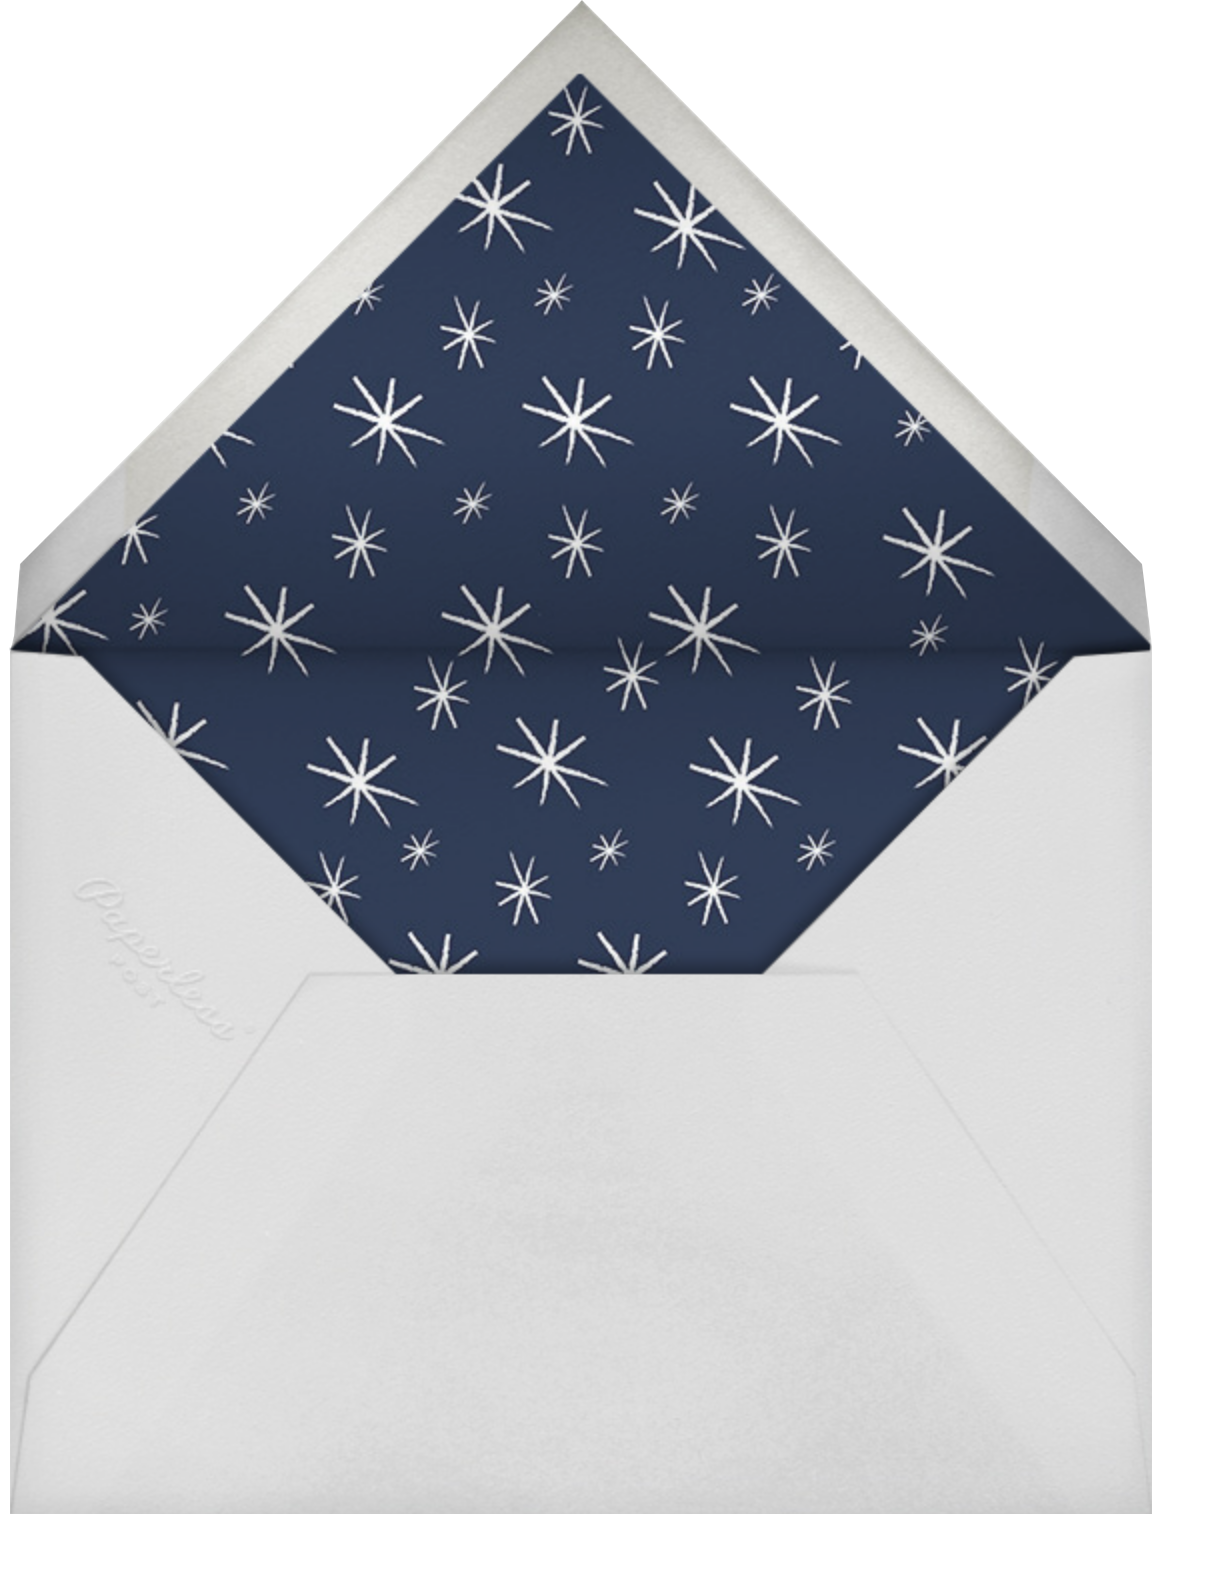 Space Bunch - Midnight - Paperless Post - Envelope